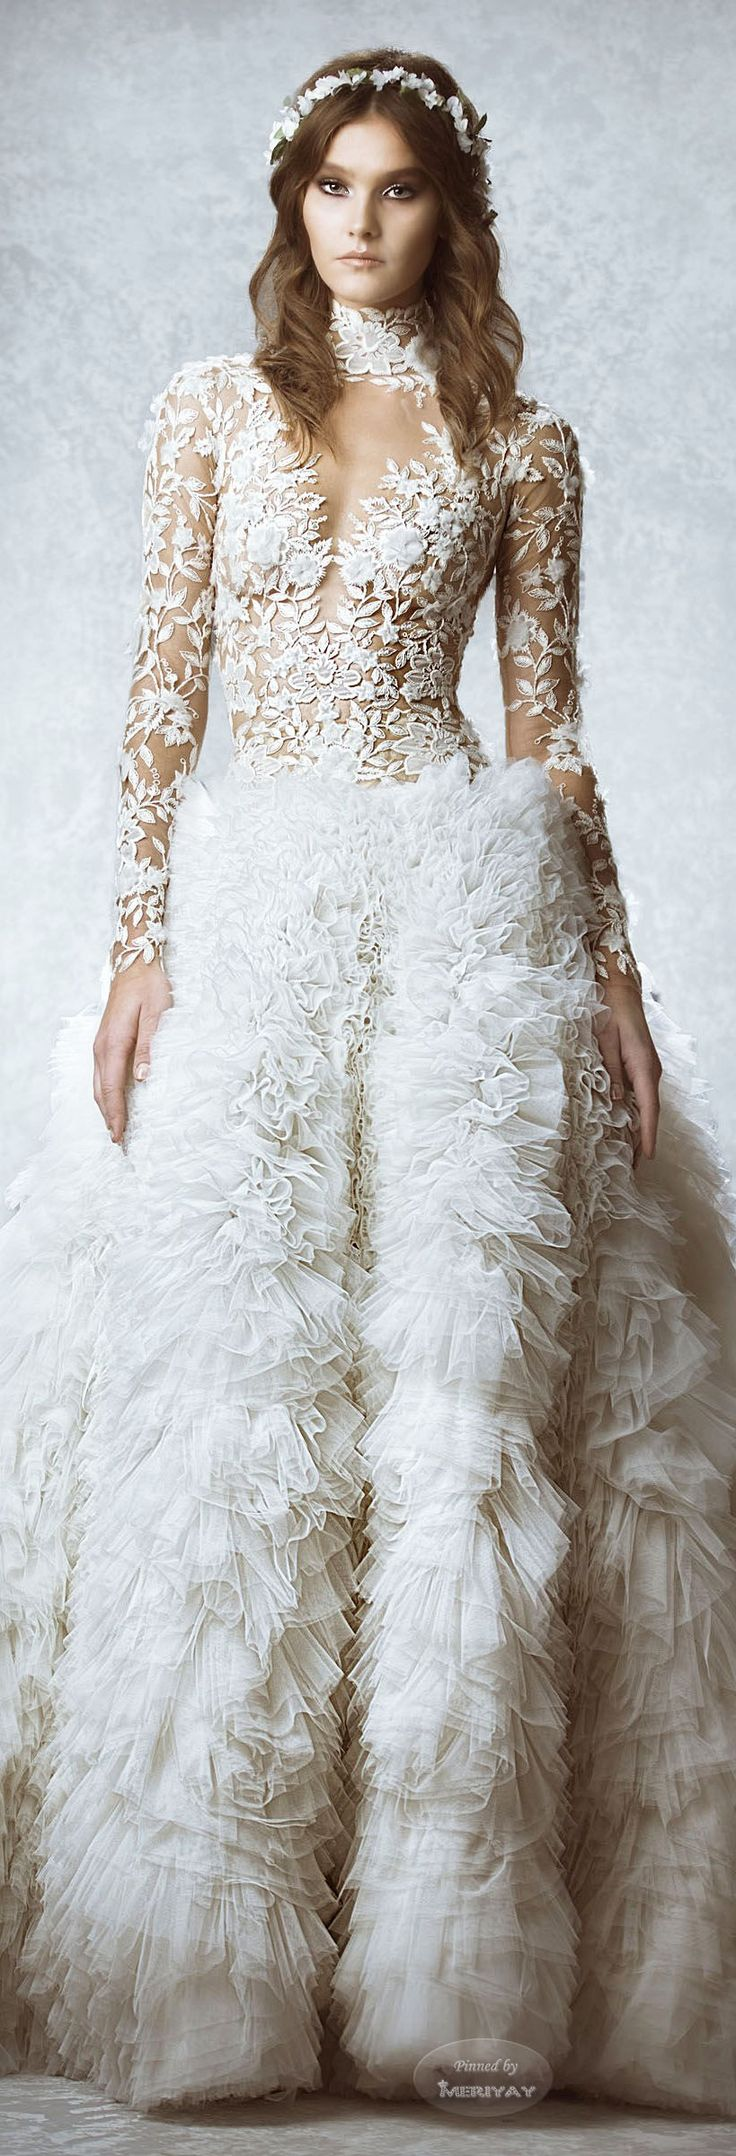 best bridal gowns contemporary images on pinterest wedding